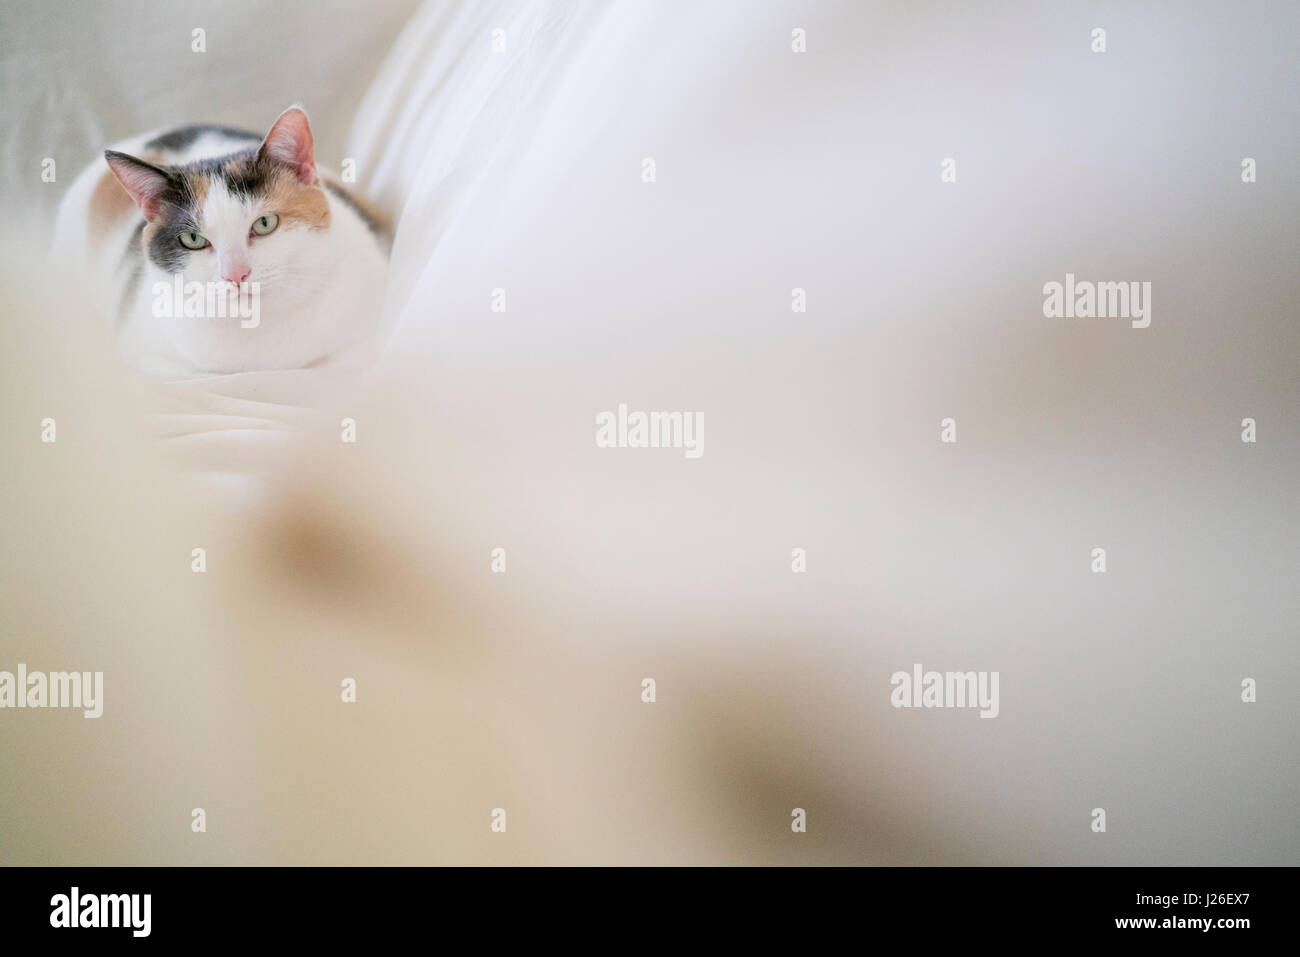 A light calico cat rests on a white sheet in soft light. Stock Photo